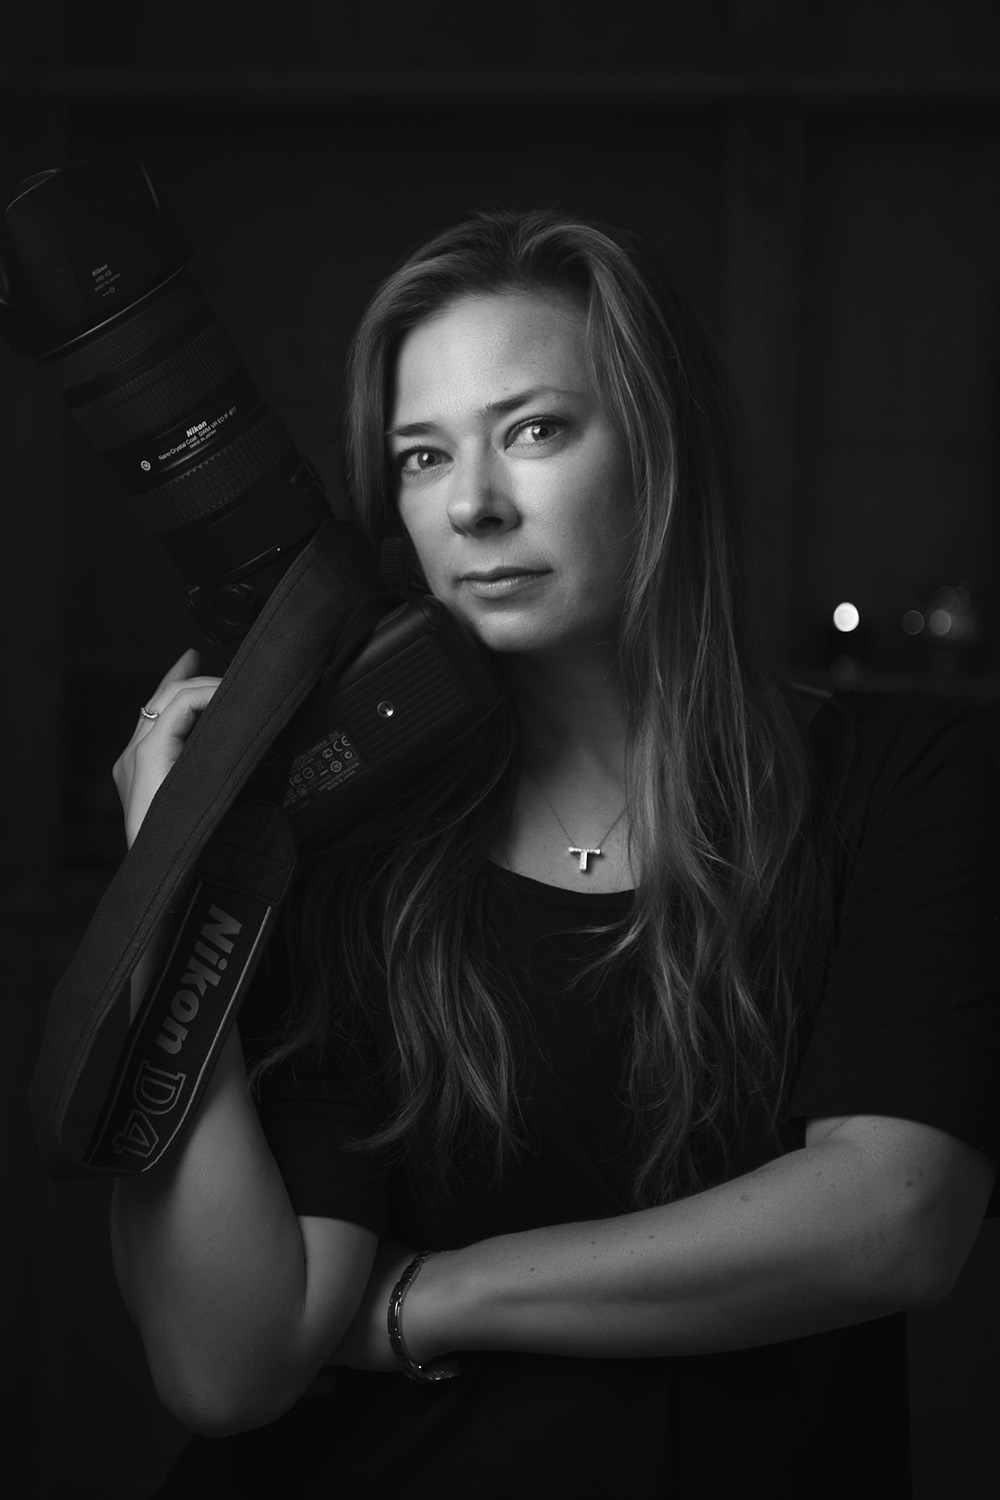 Black and White photo of Photographer Tanya Wilson standing holding up Nikon camera